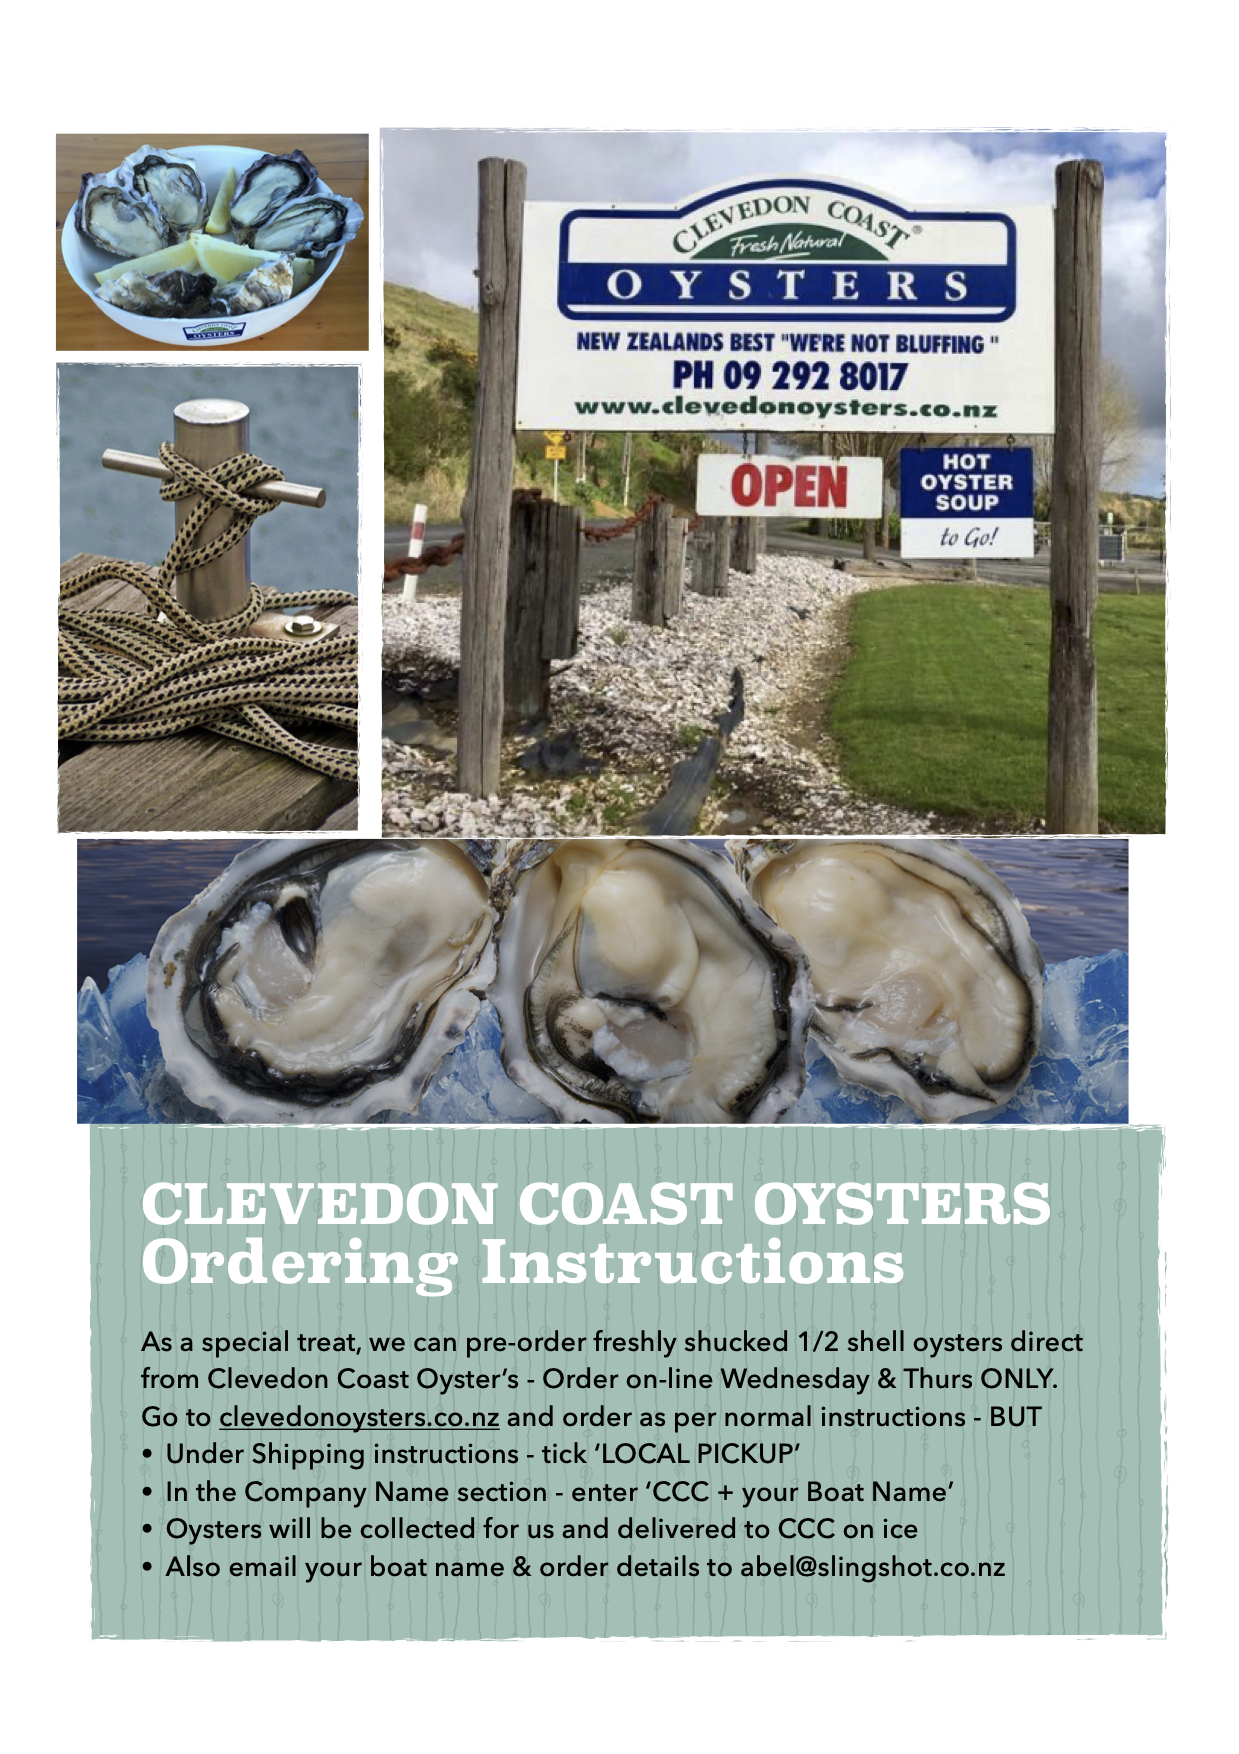 Clevedon Oysters - Ordering